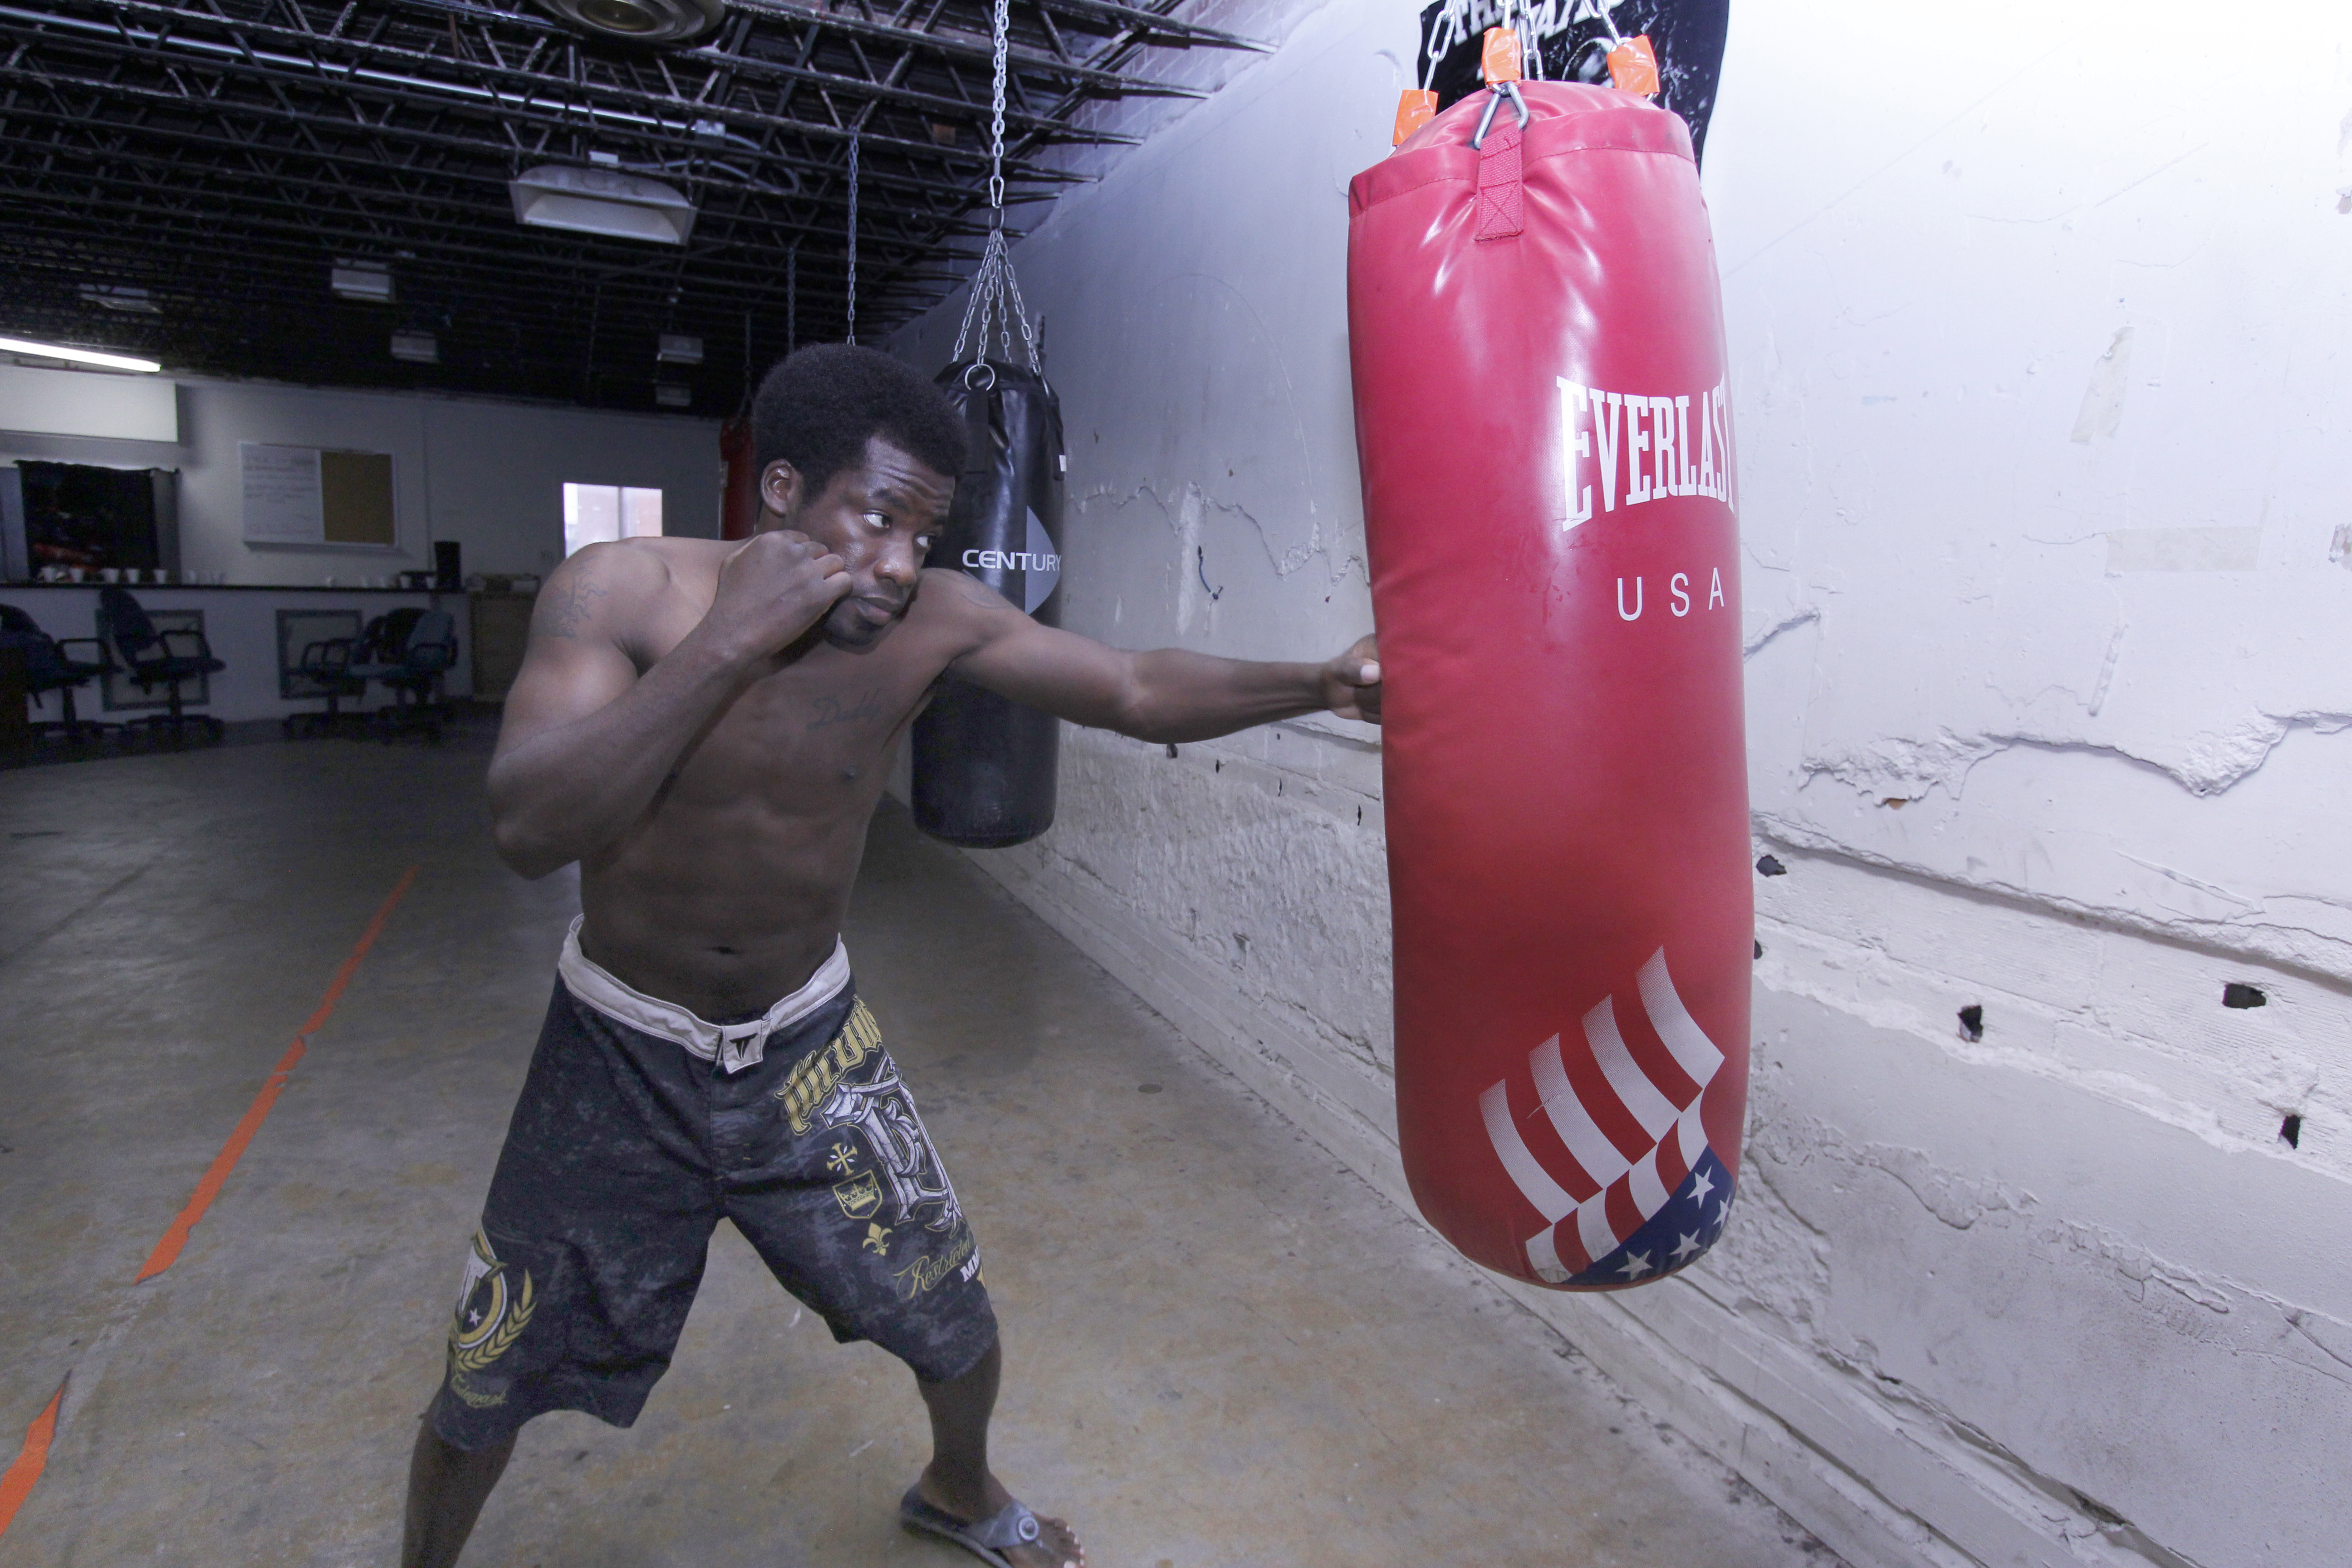 """Tolu """"Techdaddy"""" Agunbiade hits the bag during training at Falls Town Fight Club. Agunbiade fought at The King of the Cage World Amateur Championship on Oct. 19 in Las Vegas. Agunbiade's next fight will be a grappling match at Newberry in Dallas on Nov. 7."""